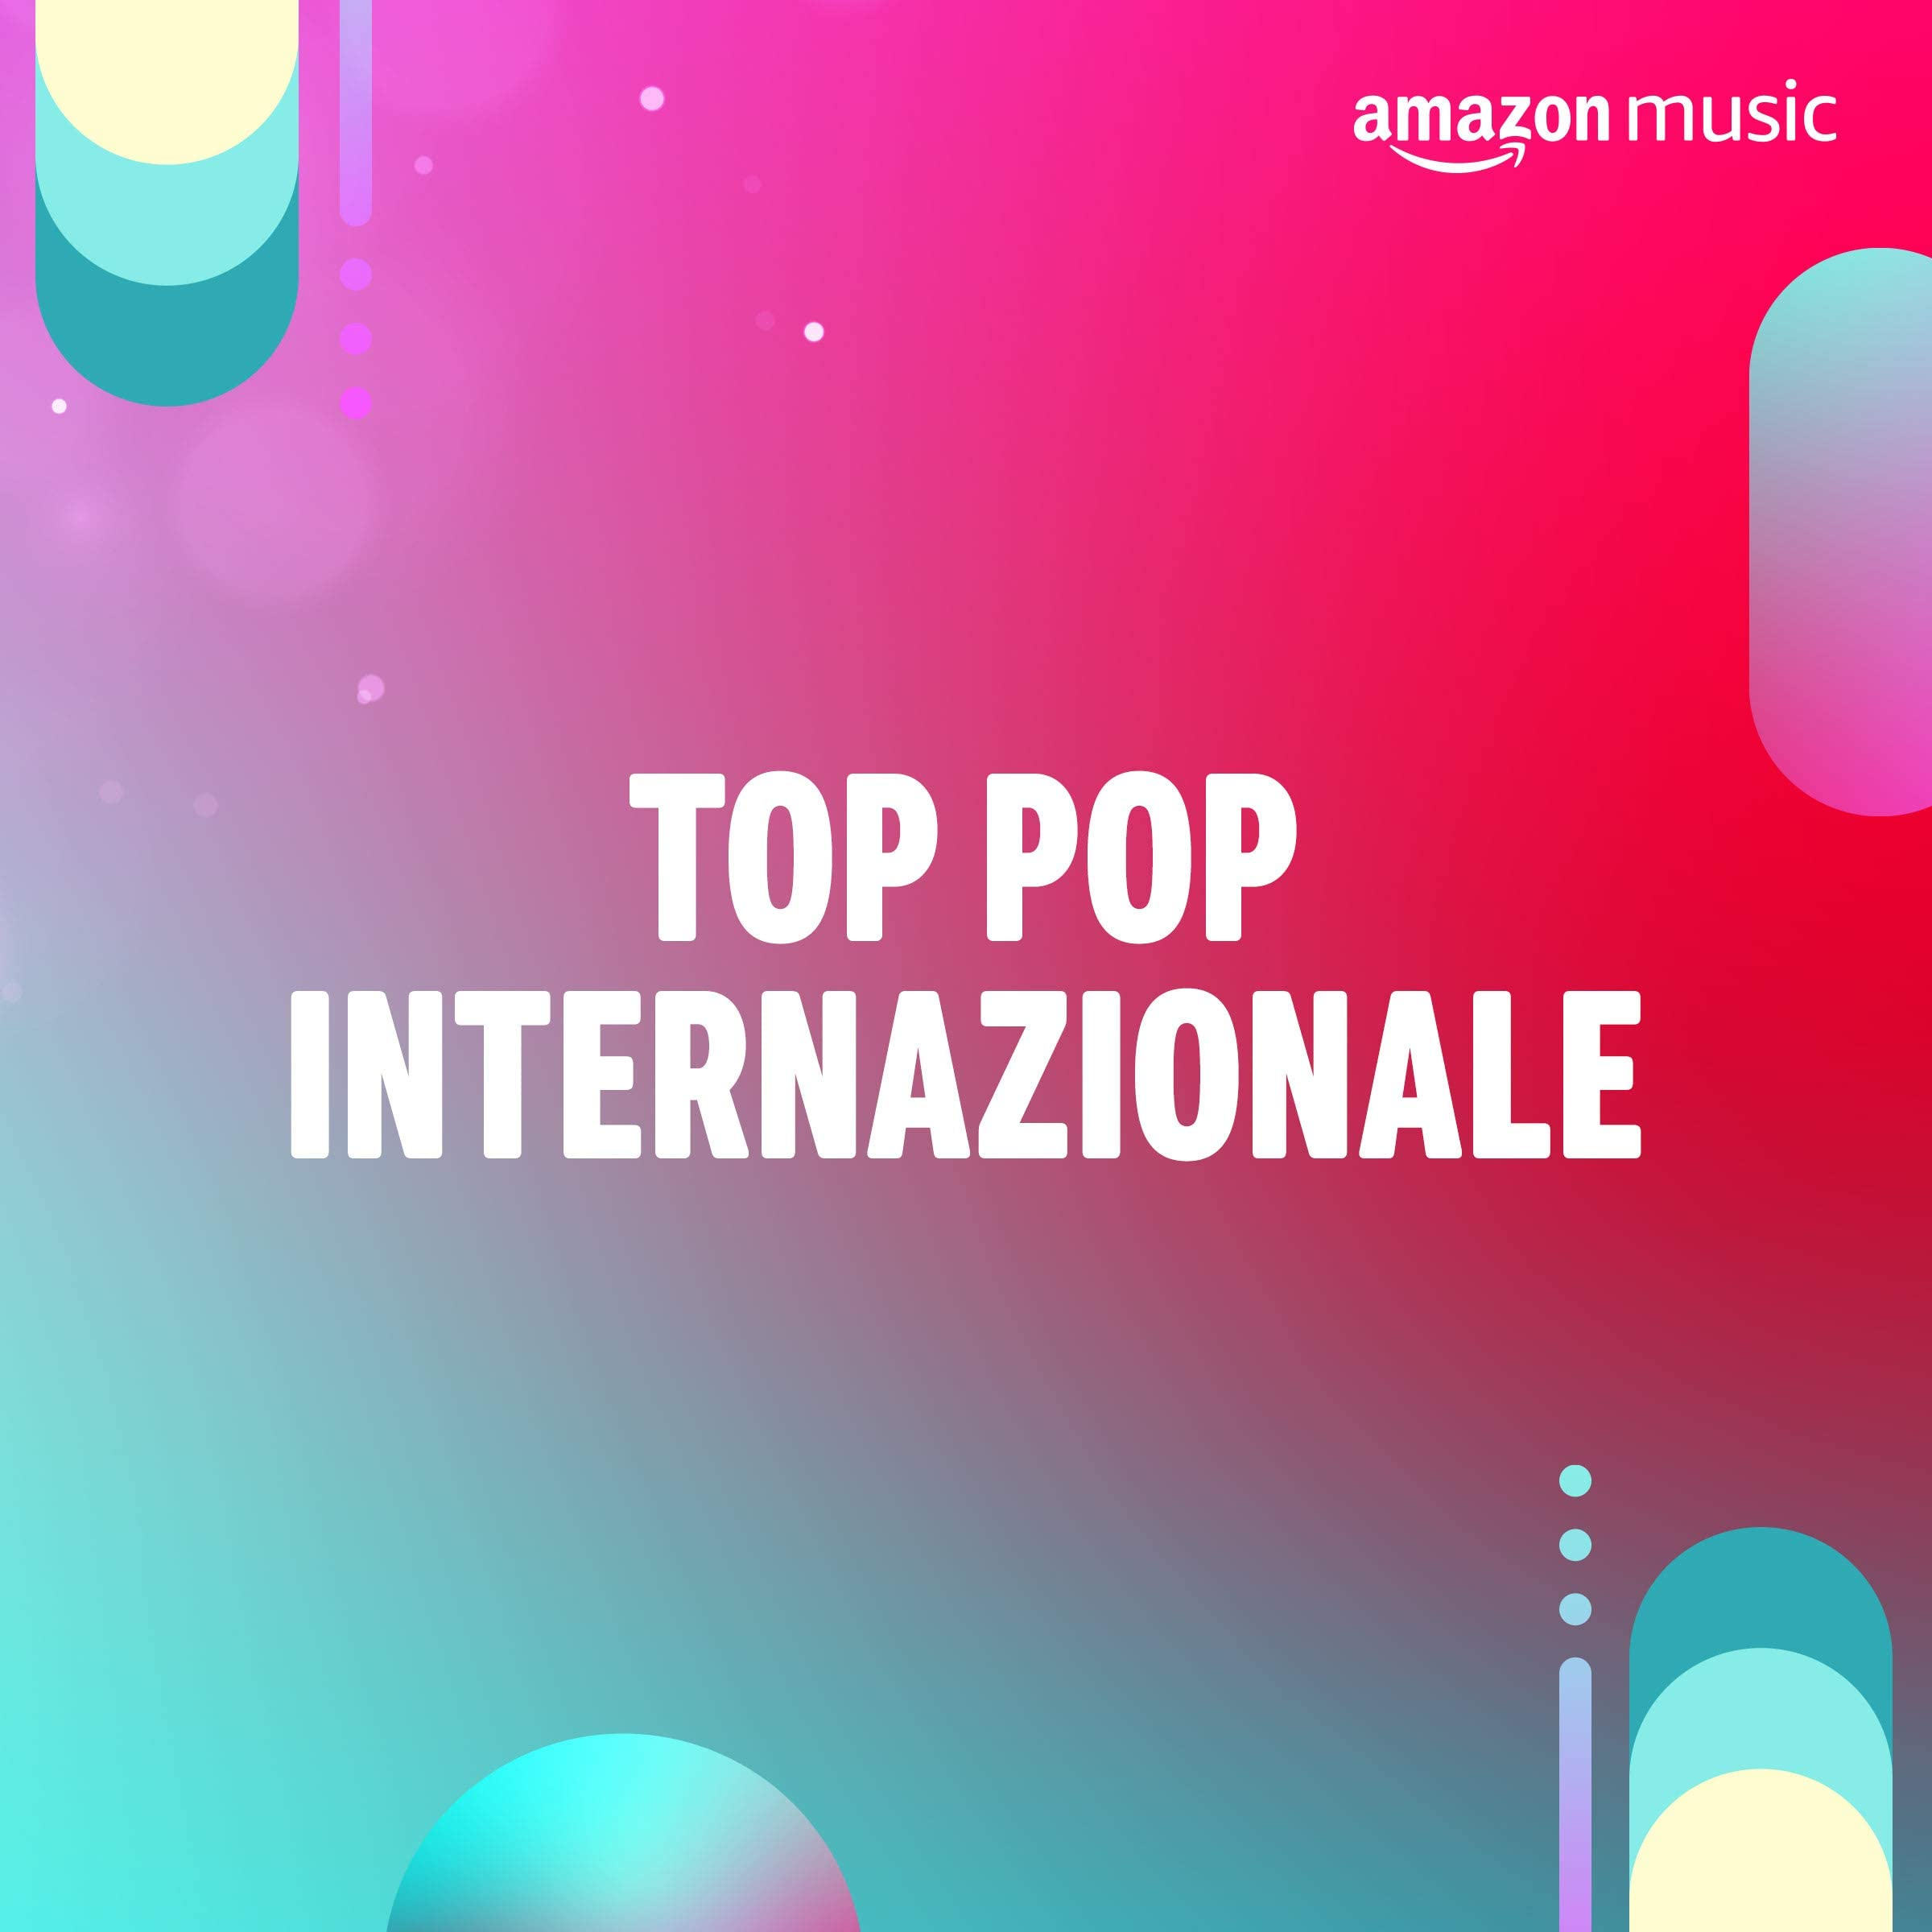 Top Pop Internacional